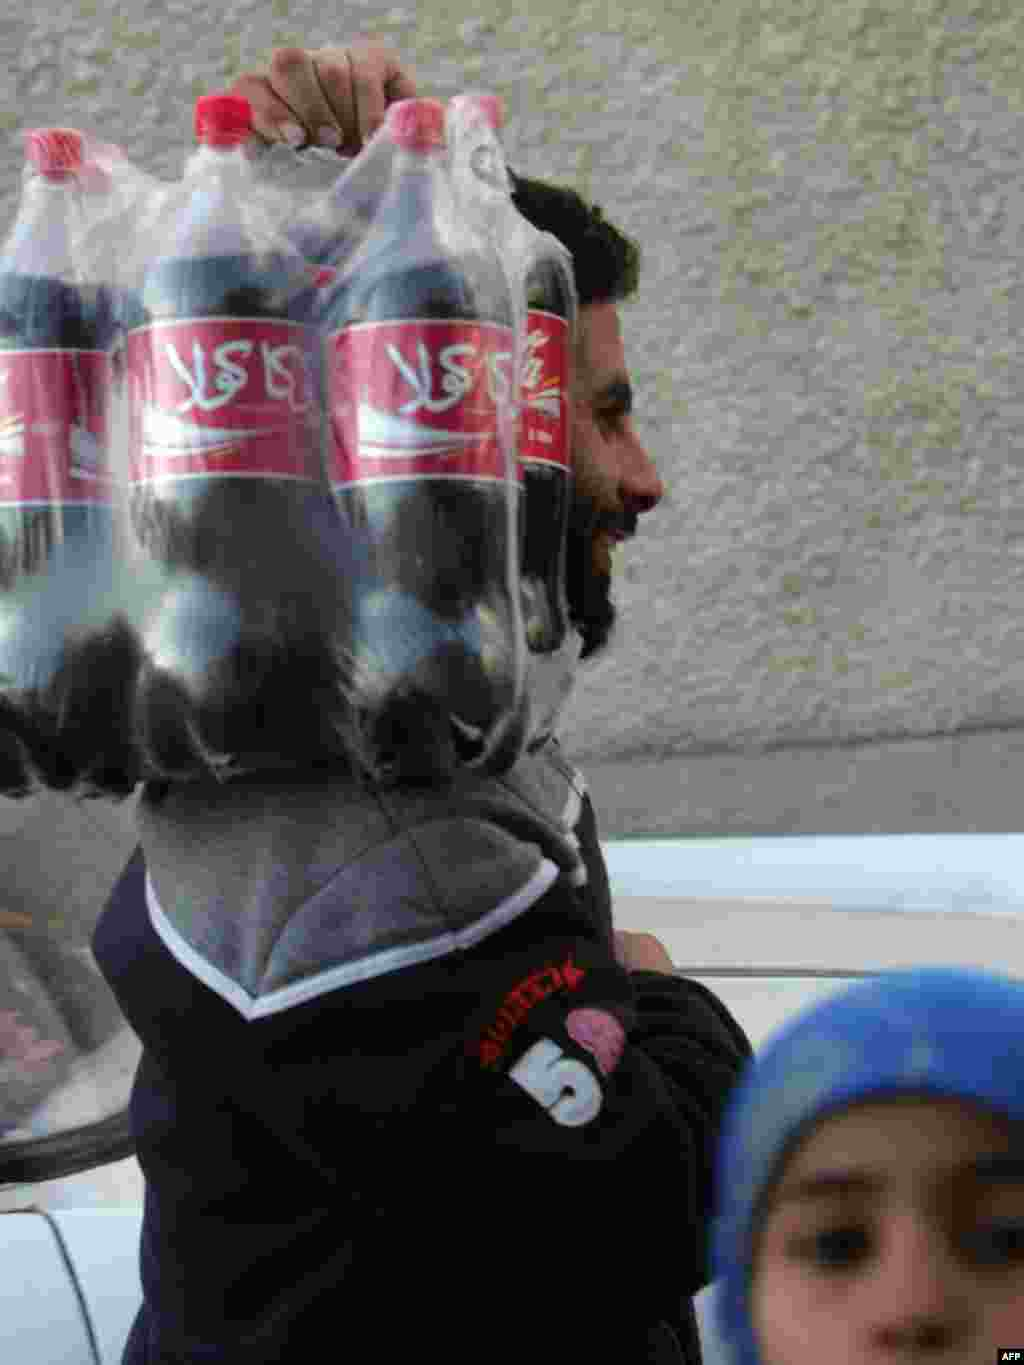 Coca-Cola - No Coca-Cola? Really? Yes. Ahmadinejad on June 1 asked Iranians to boycott Coca-Cola and other Western brands because -- you guessed it -- the company does business with Israel.